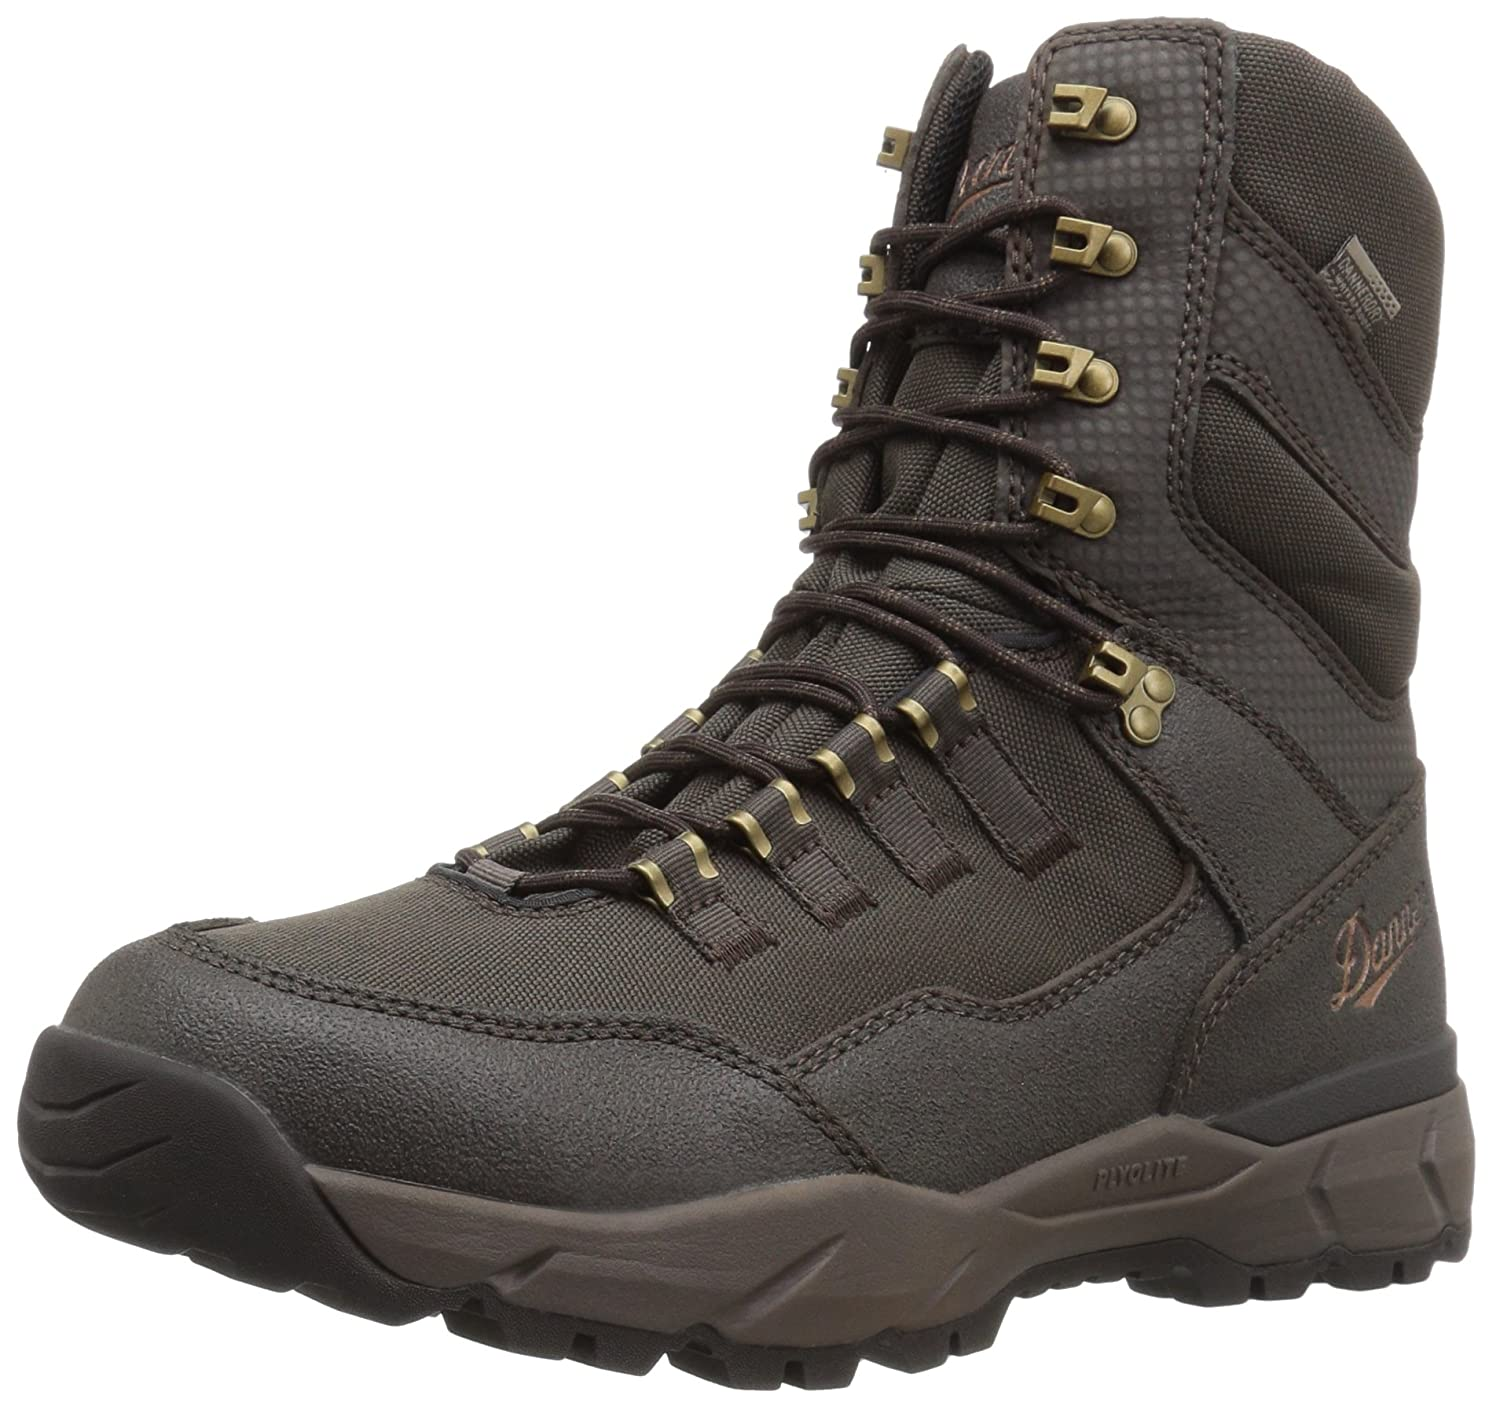 Danner Men's Vital Hunting Shoes Vital-M